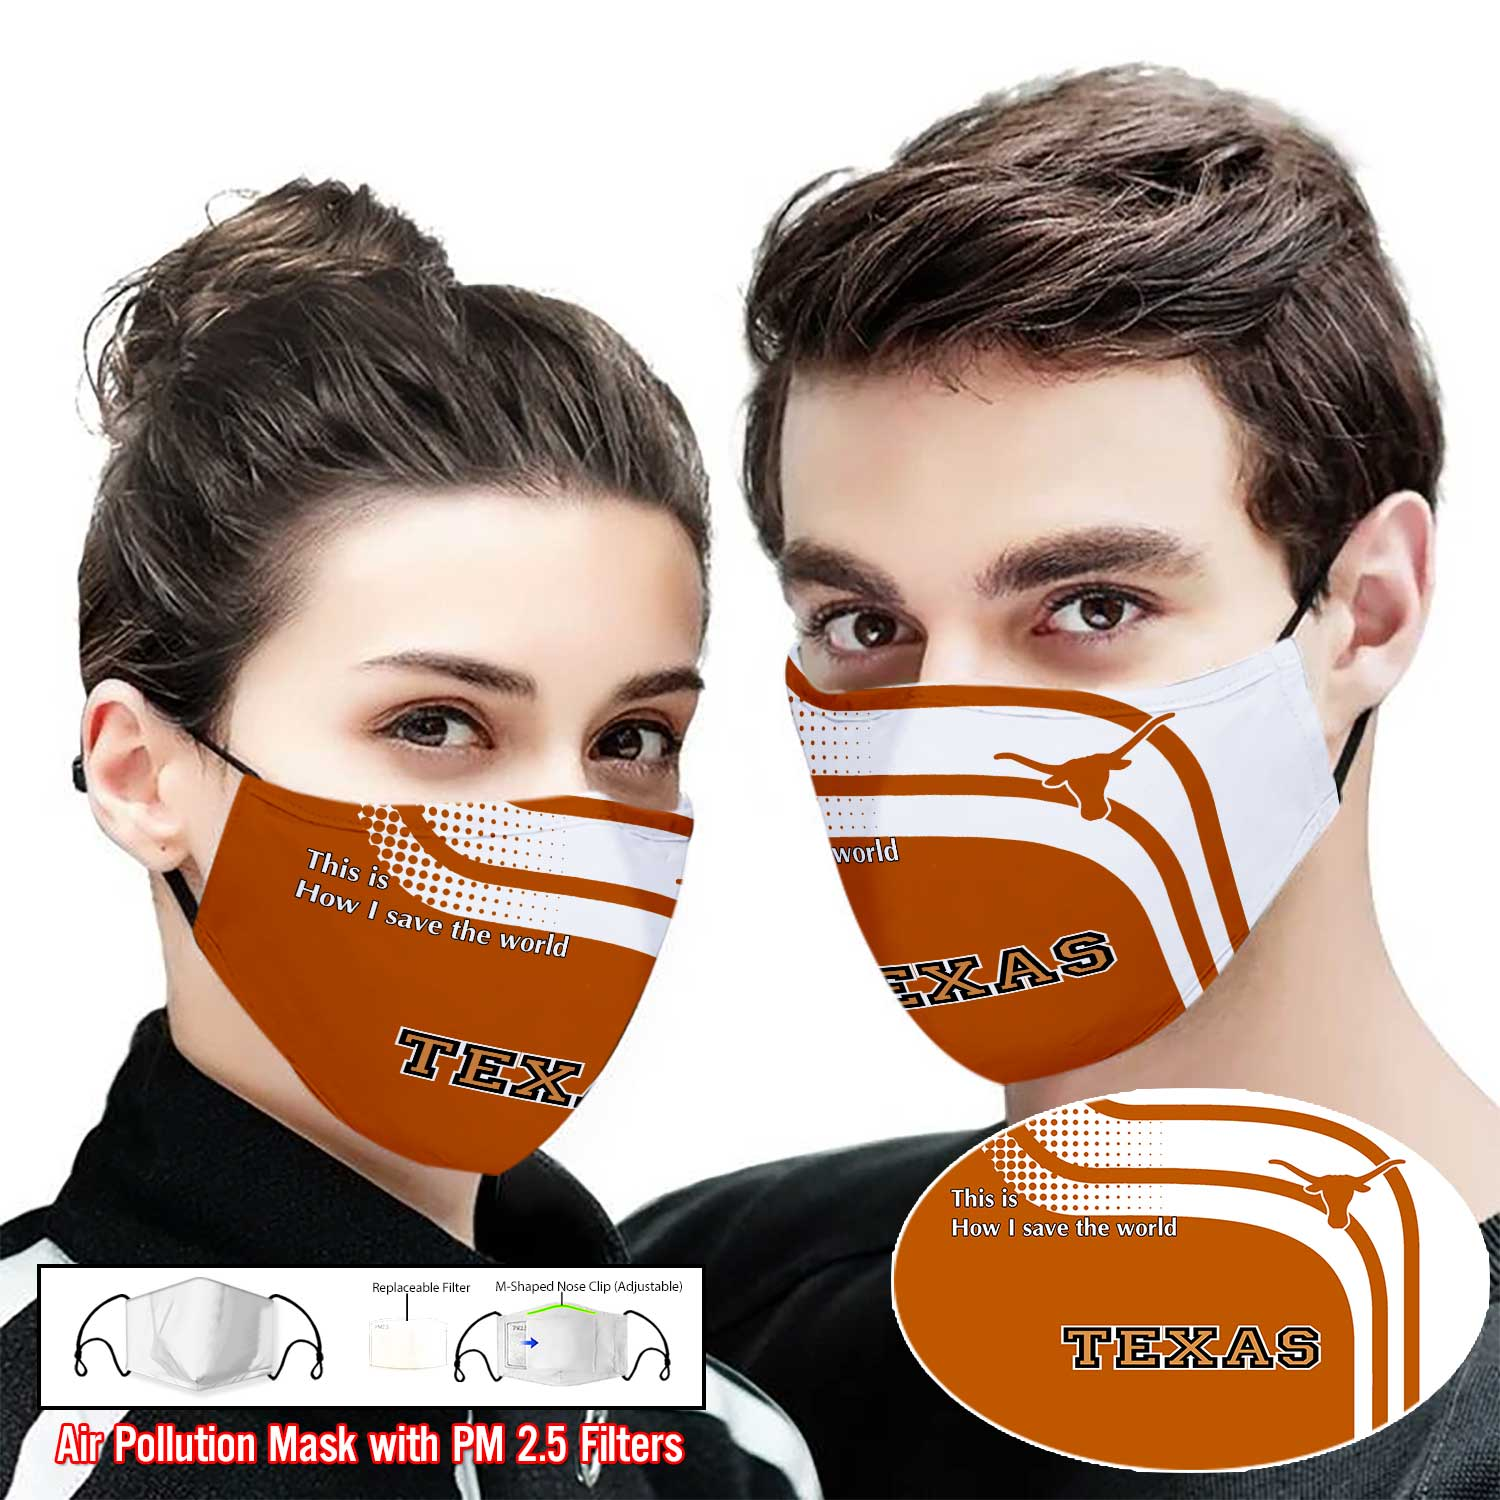 Texas longhorns this is how i save the world full printing face mask 1